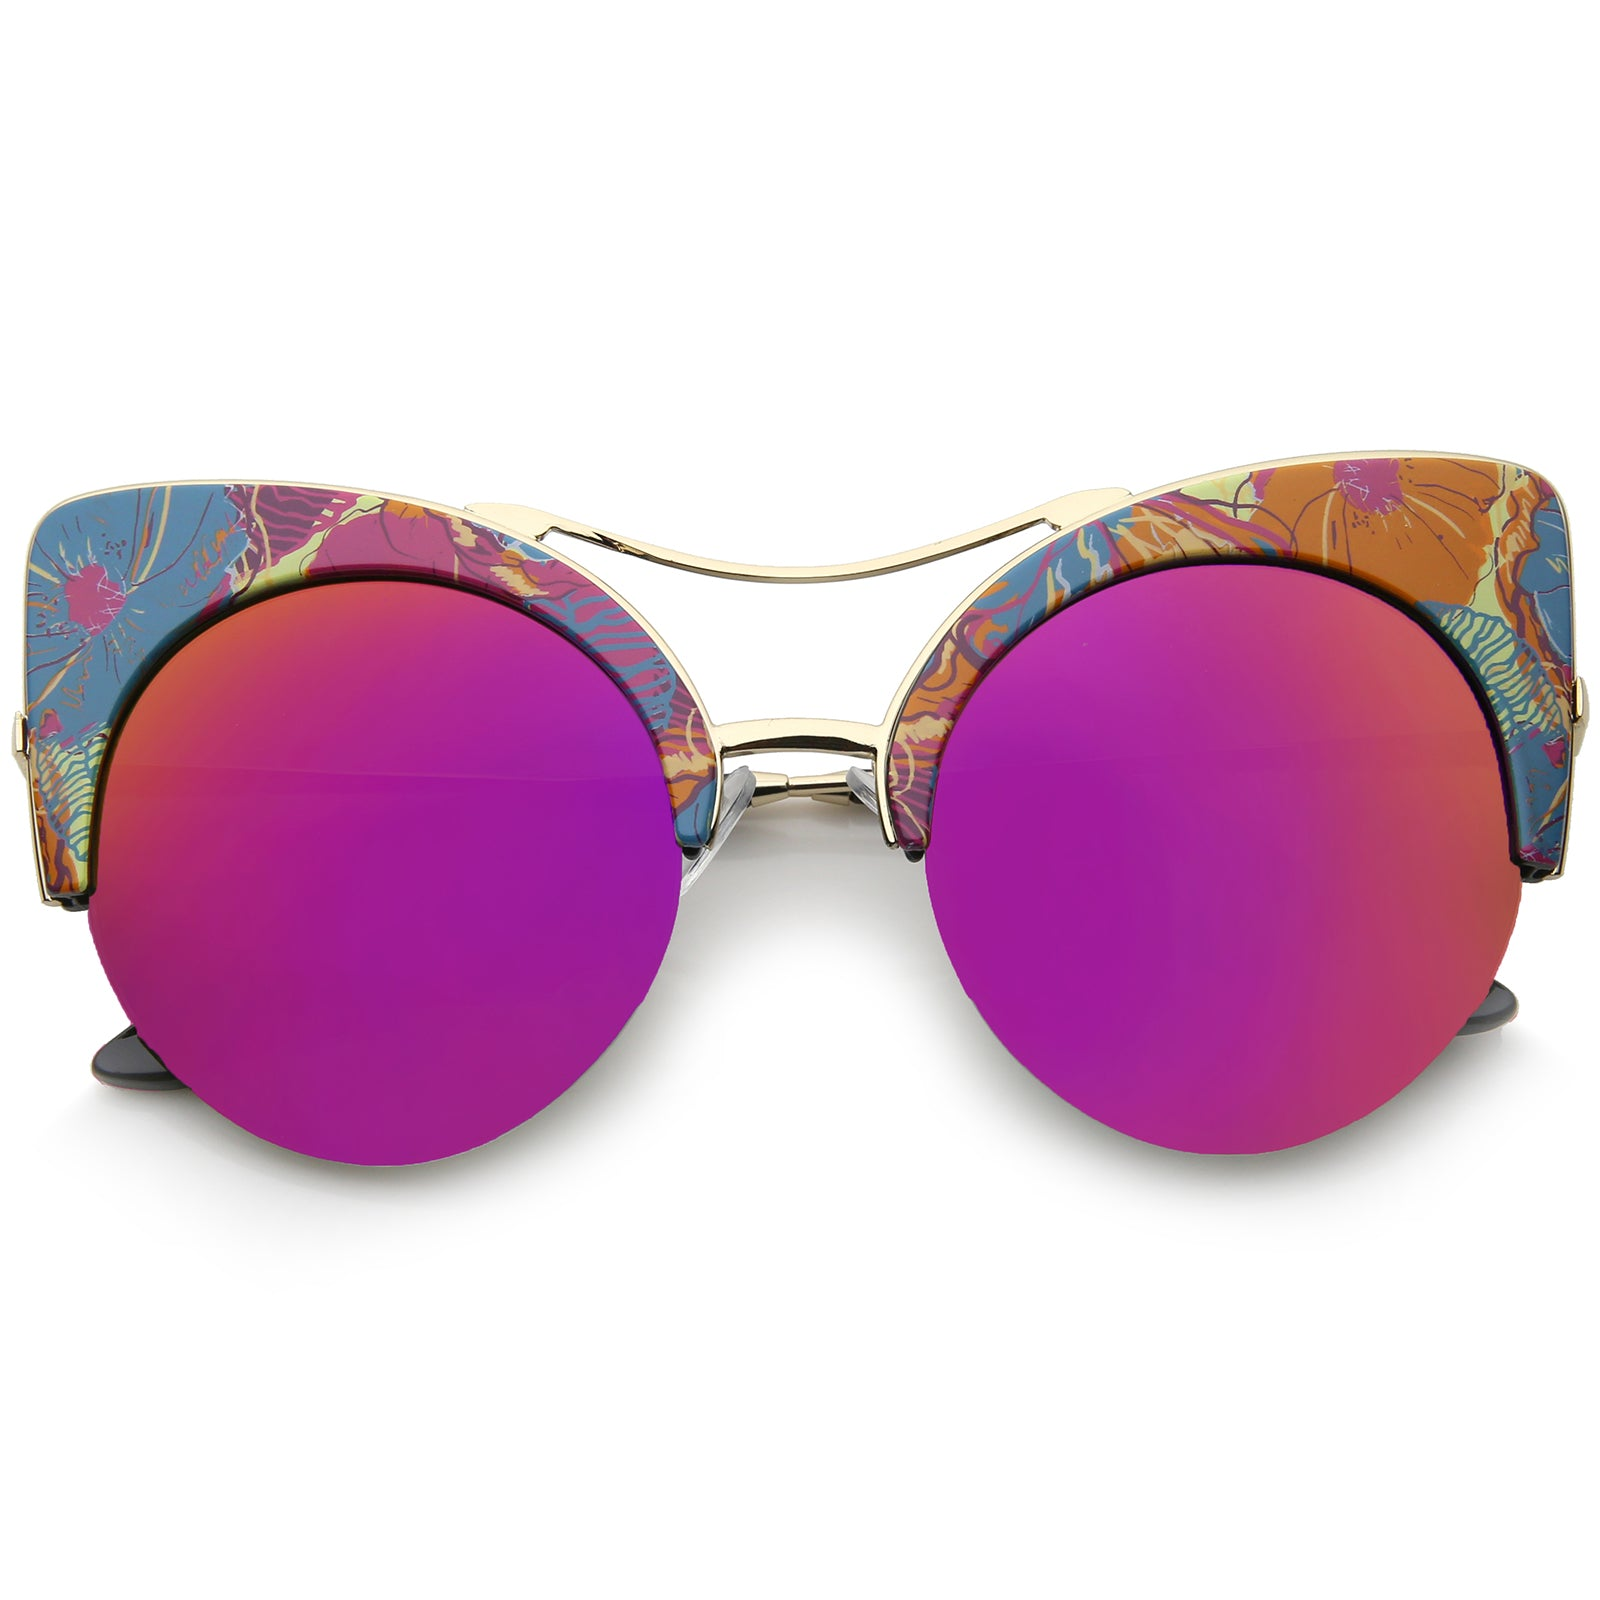 Women's Flat Lens Floral Print Semi-Rimless Round Cat Eye Sunglasses 52mm - sunglass.la - 5